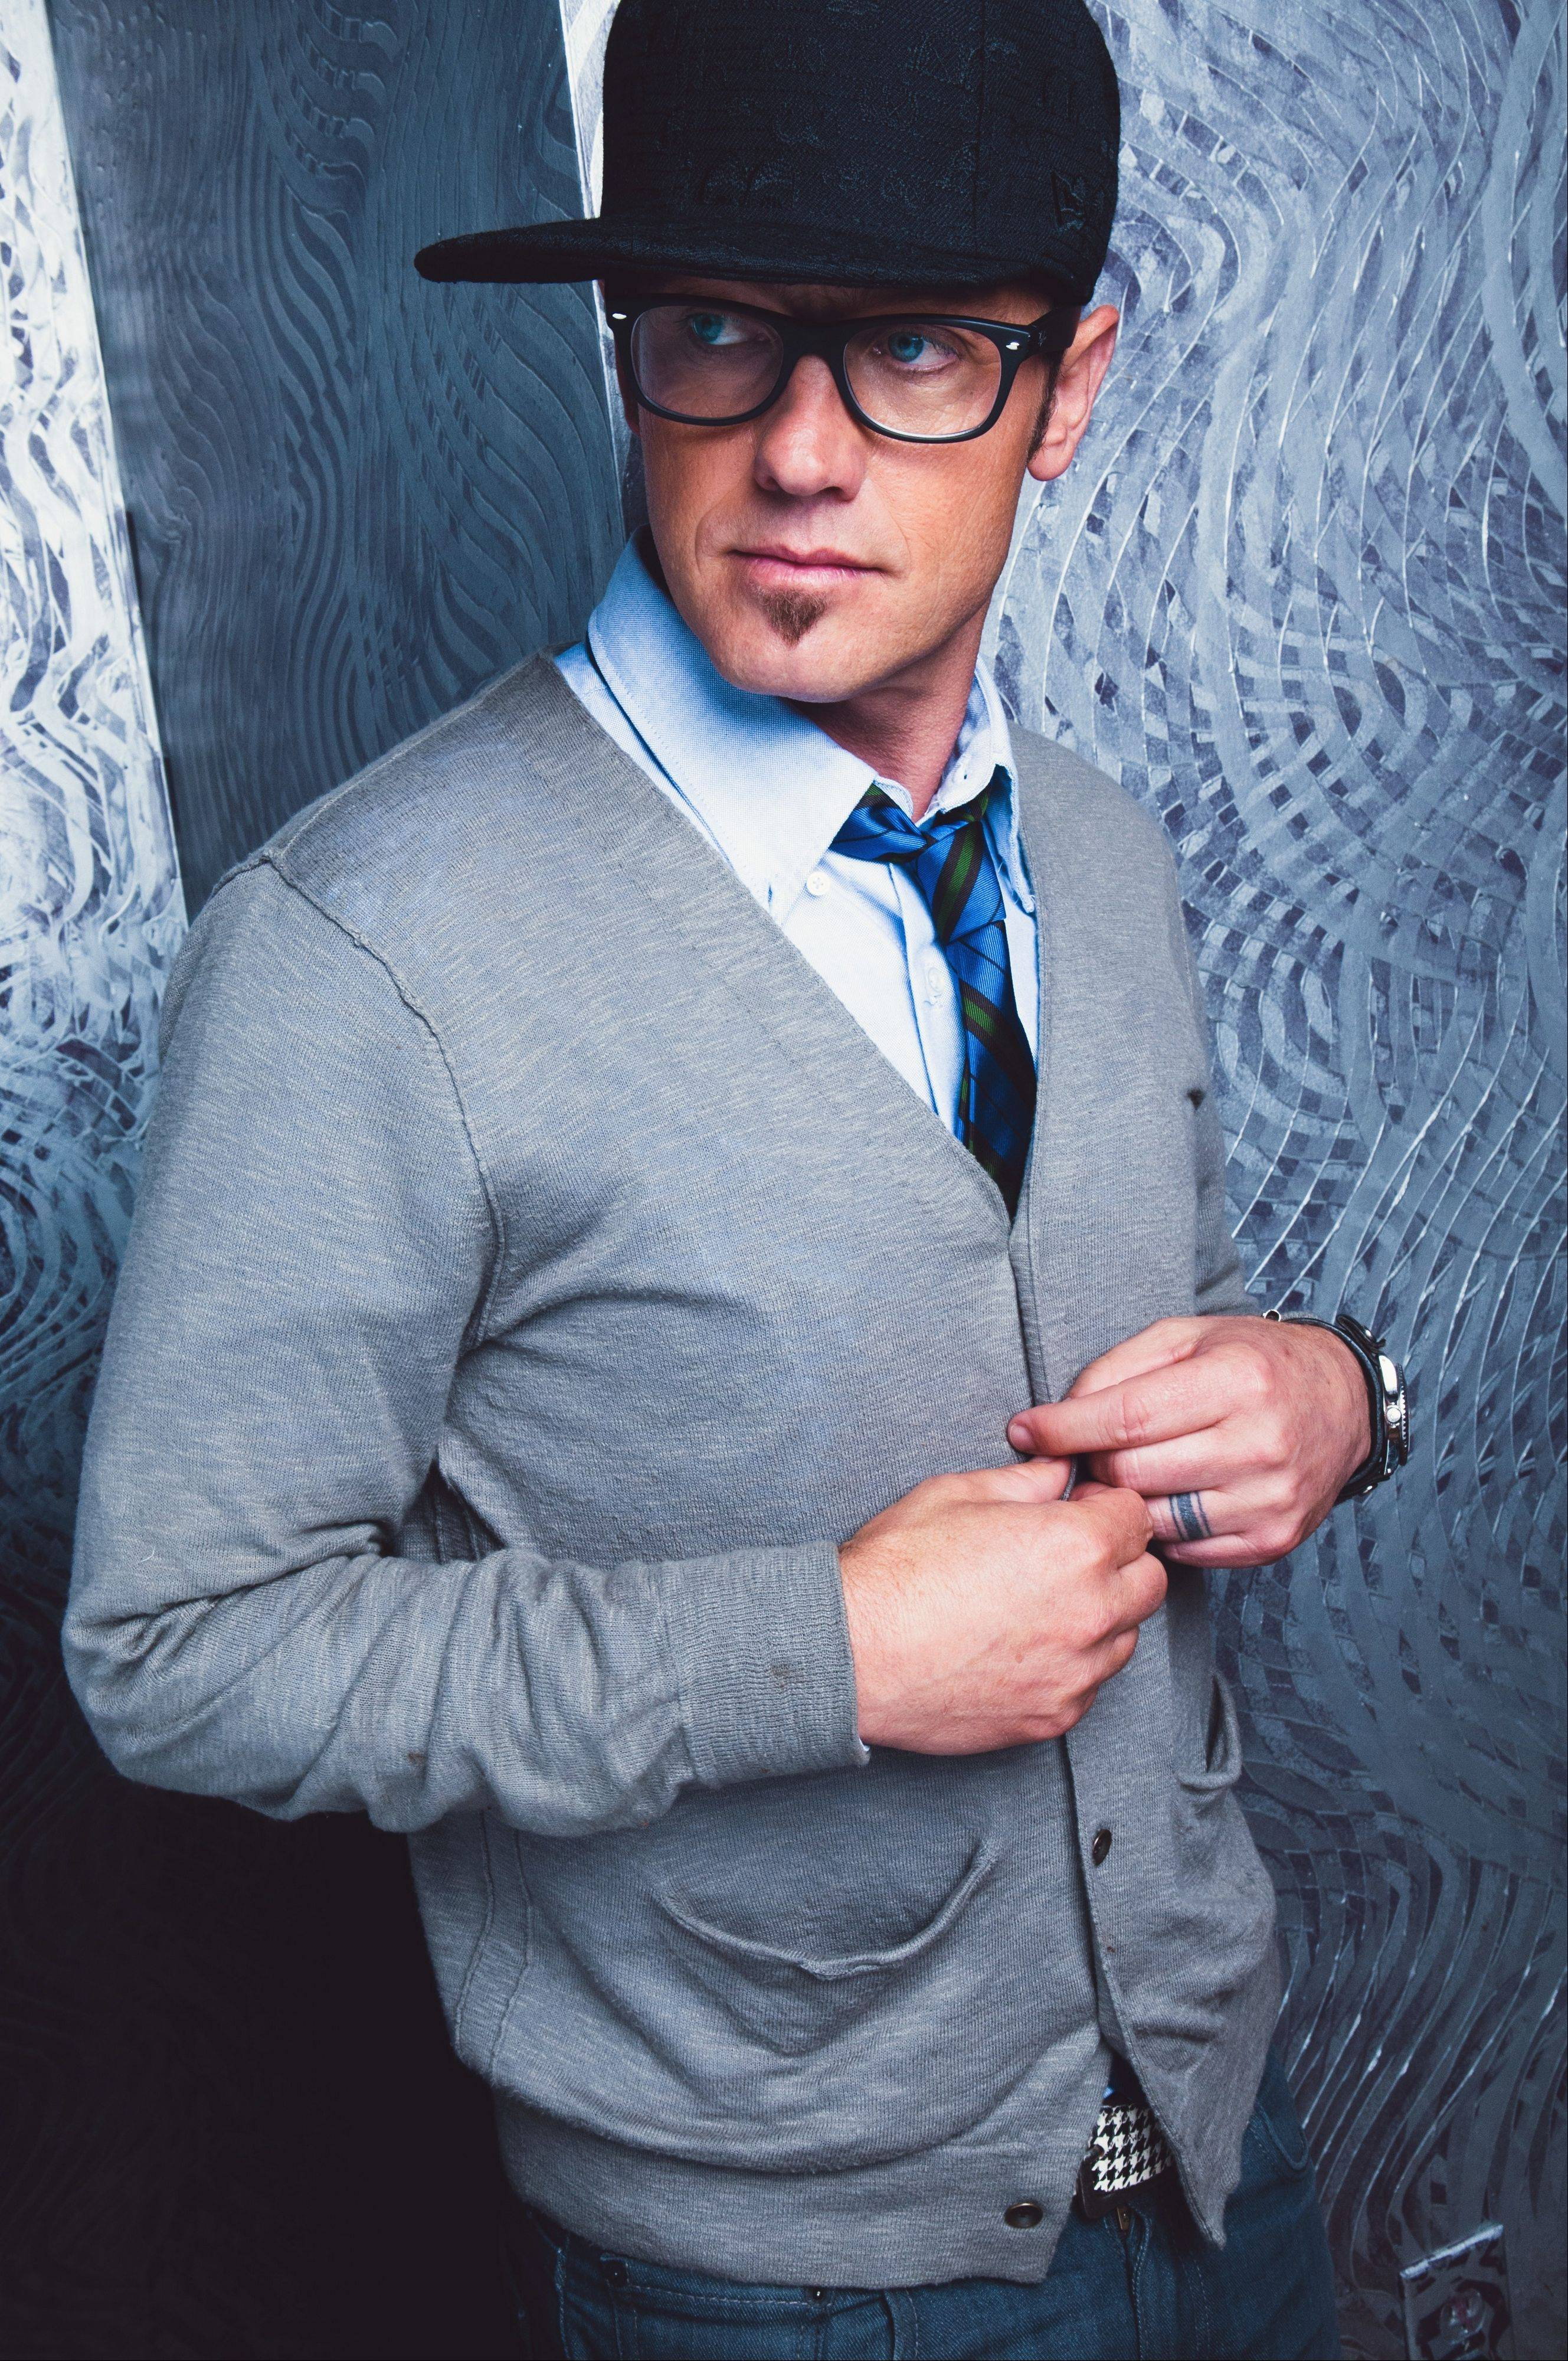 TobyMac brings his Hits Deep Tour to the Sears Centre Arena in Hoffman Estates on Saturday, Nov. 23.